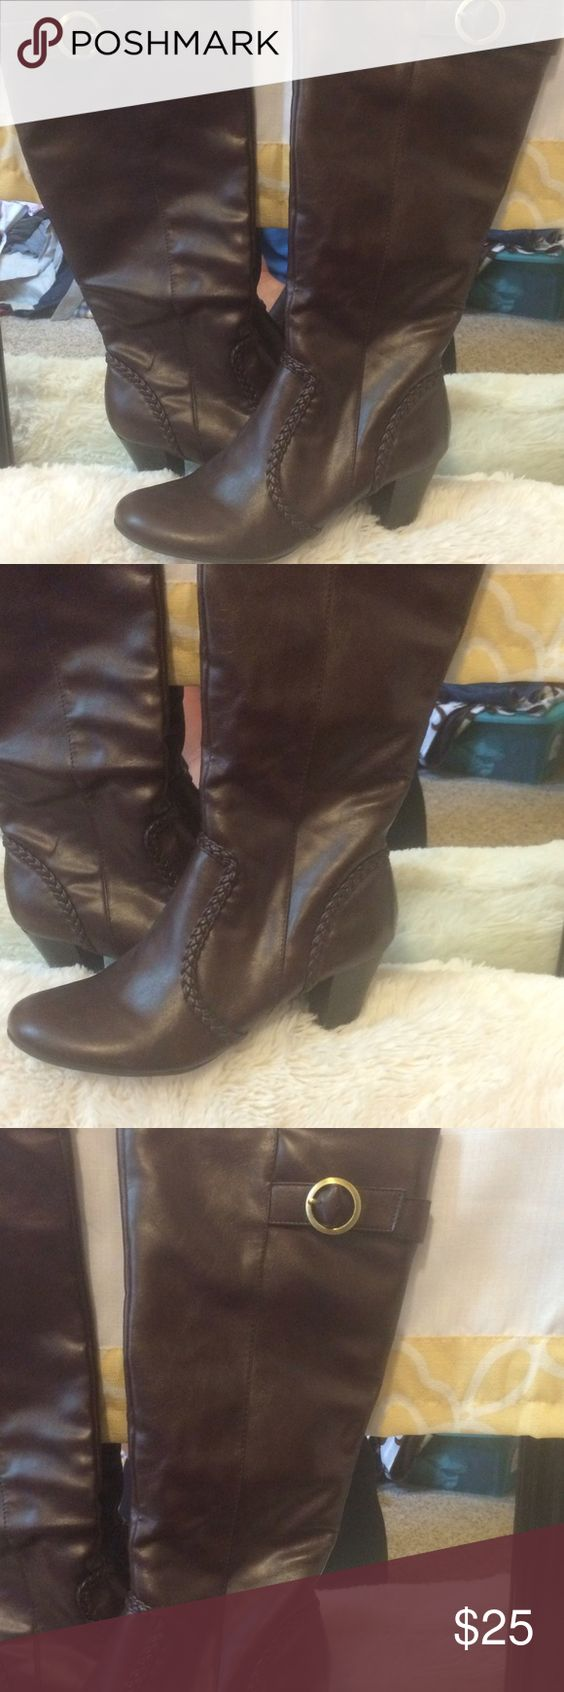 Brand-new comfort boots Excellent condition never been worn namebrand Life Stride Shoes Heeled Boots